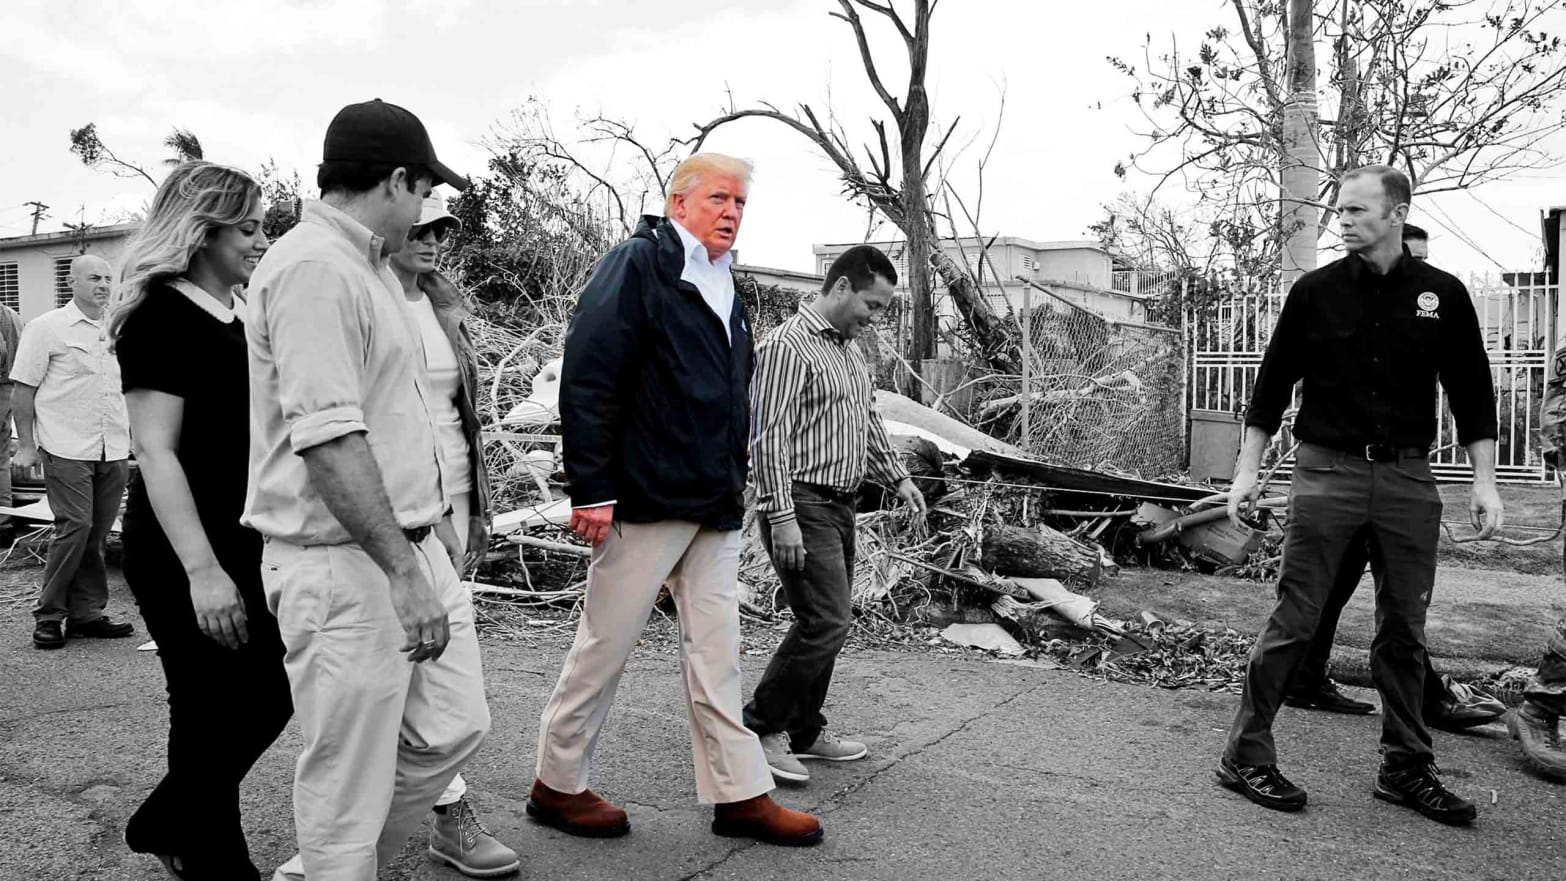 Which Was Worse for Puerto Rico, Hurricane Maria or Hurricane Donald?